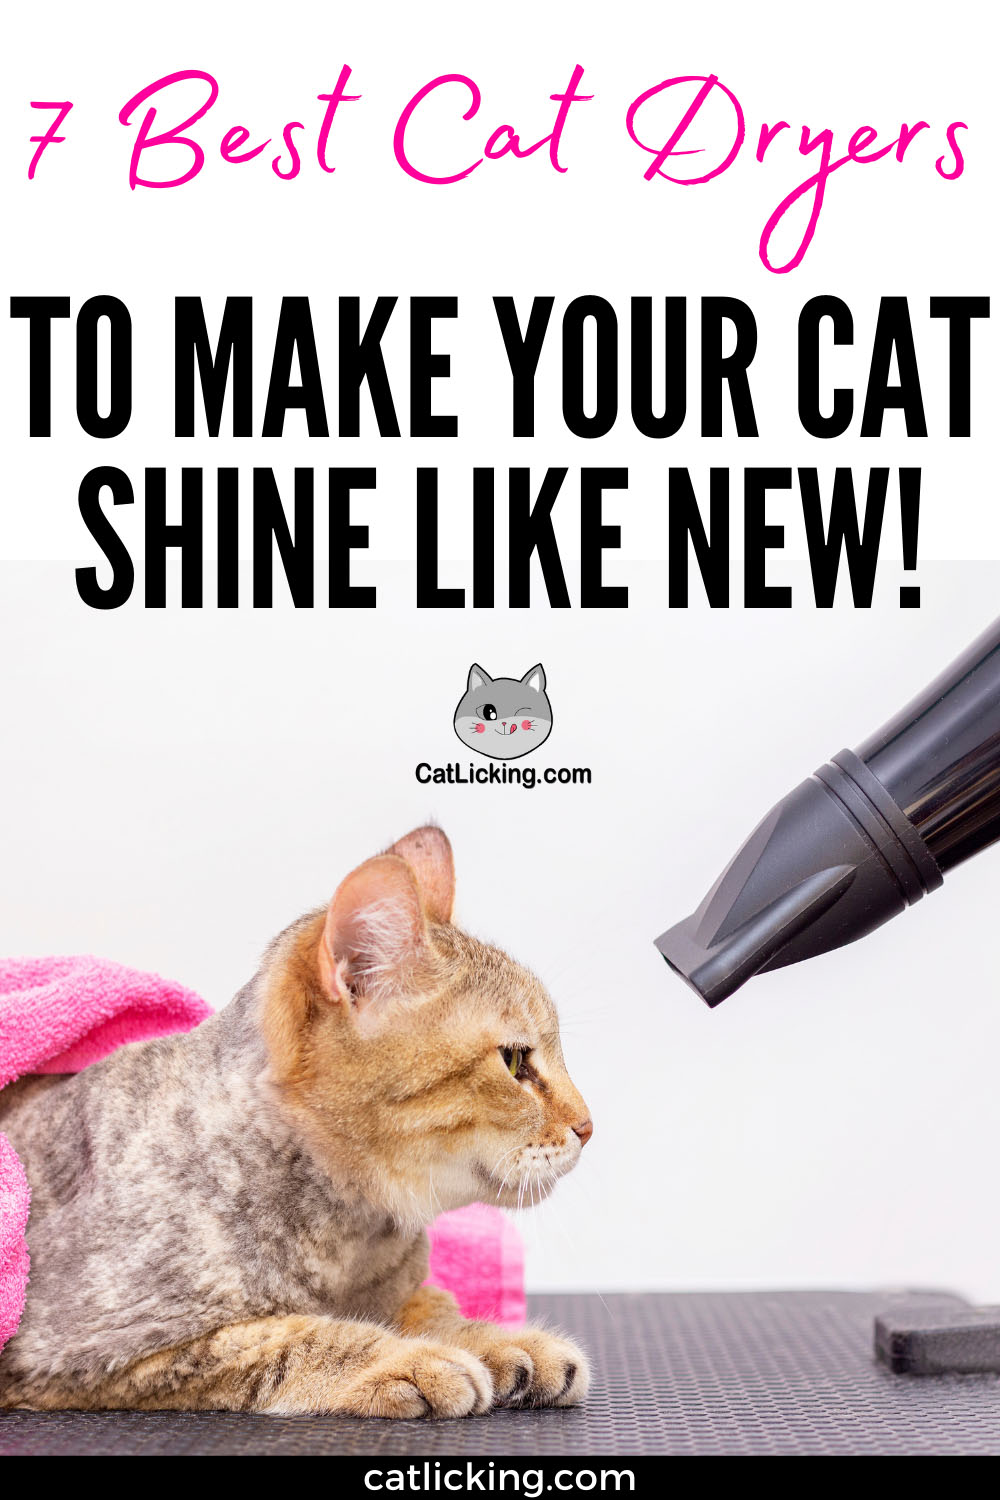 Best Cat Dryers to Make your Cat Shine Like New!